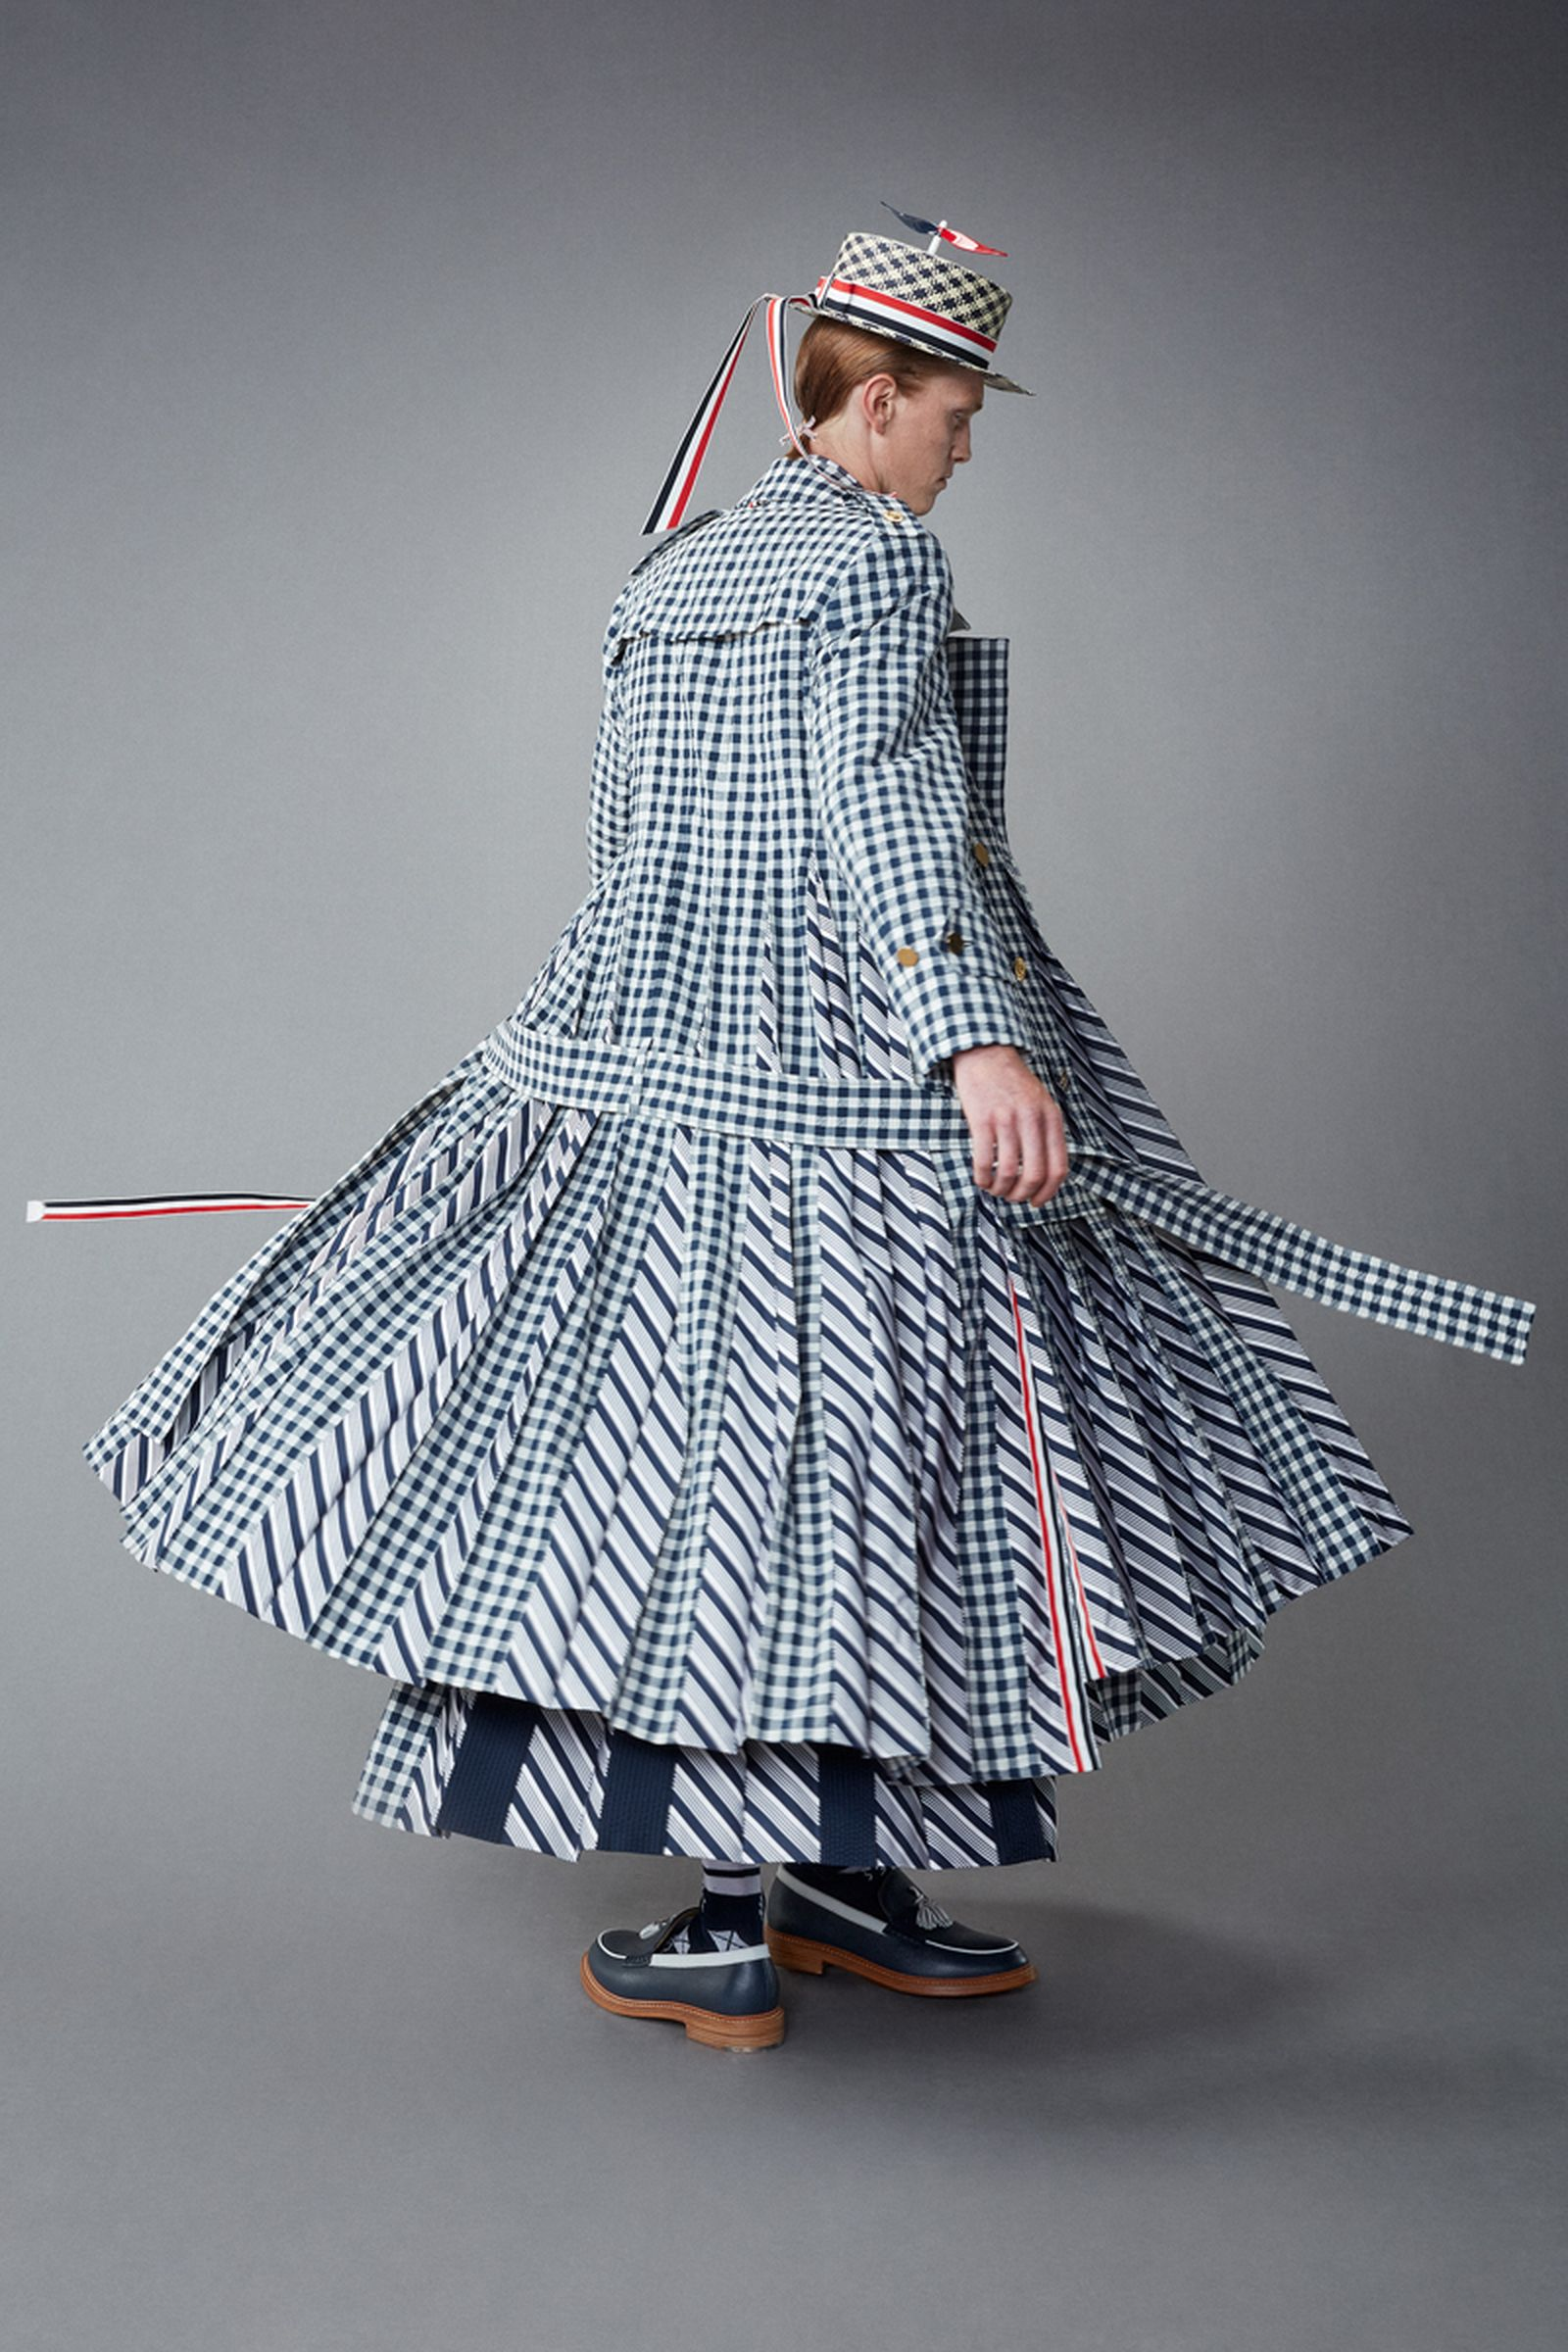 thom-browne-resort-2022-collection- (26)